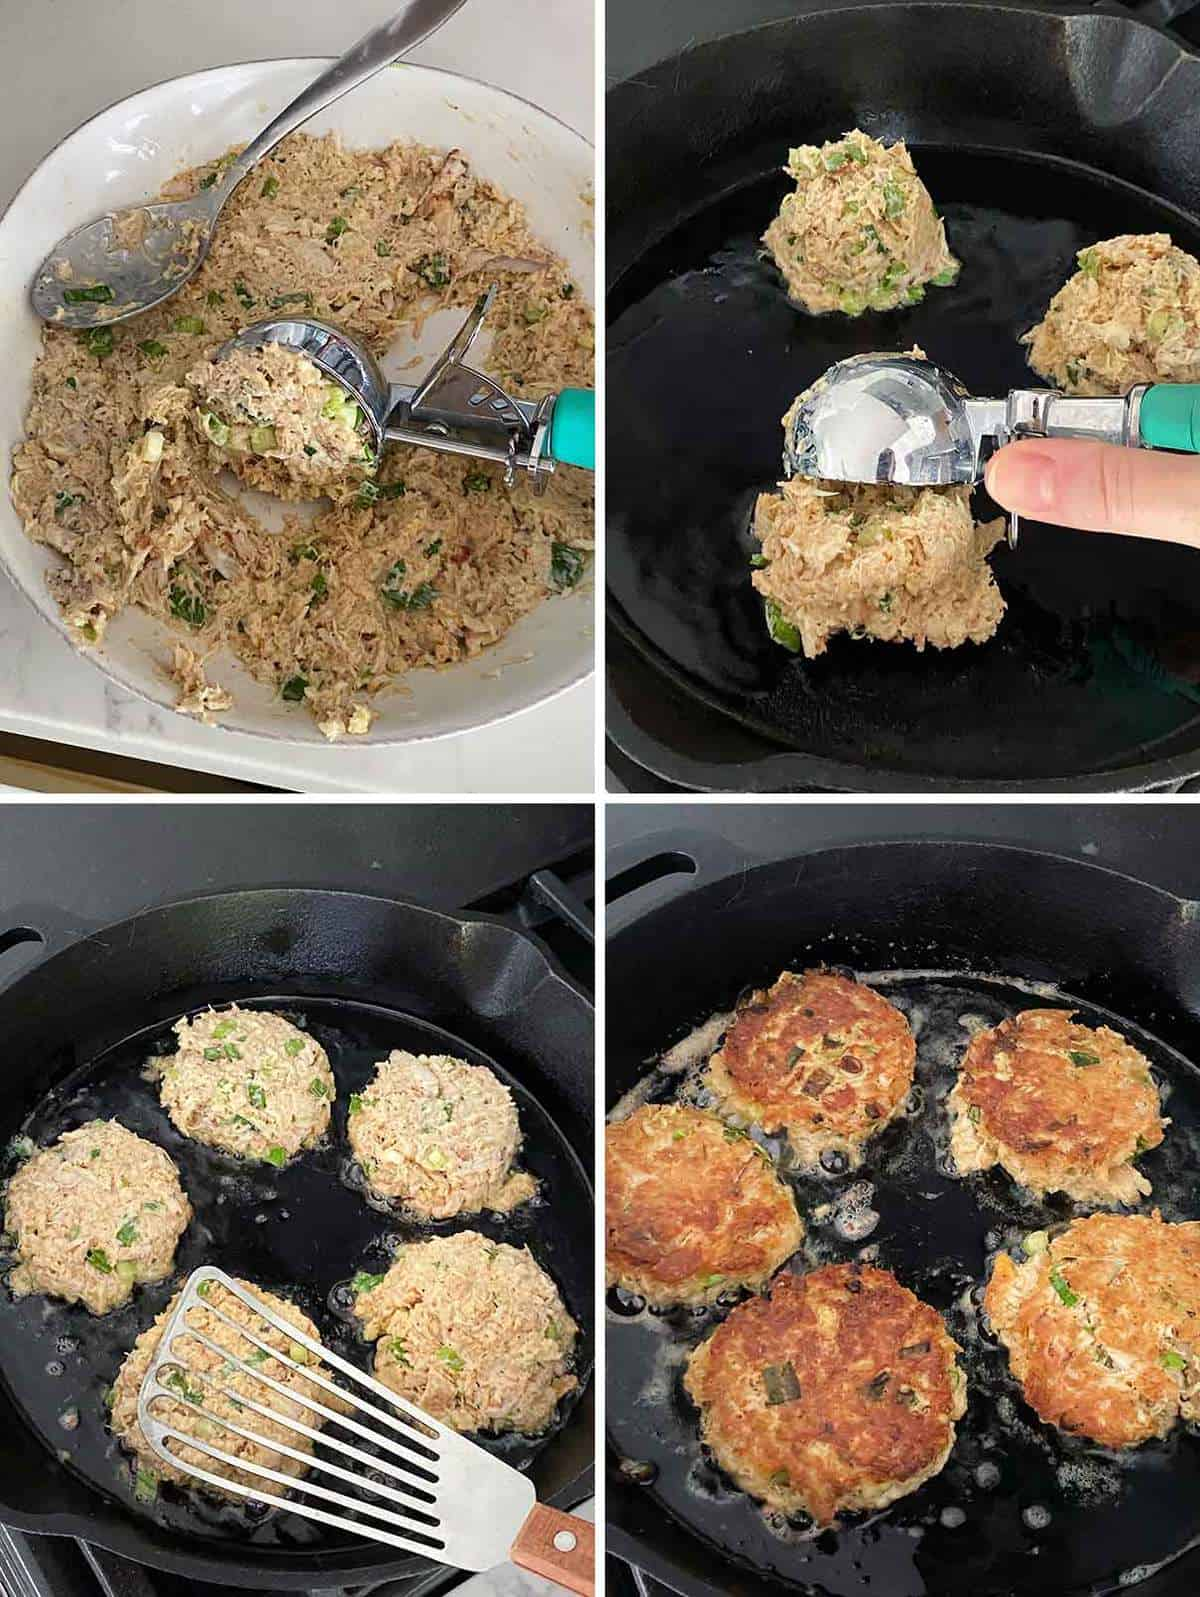 Process collage showing how to scoop crab cake mix into a hot skillet and flatten with a spatula.